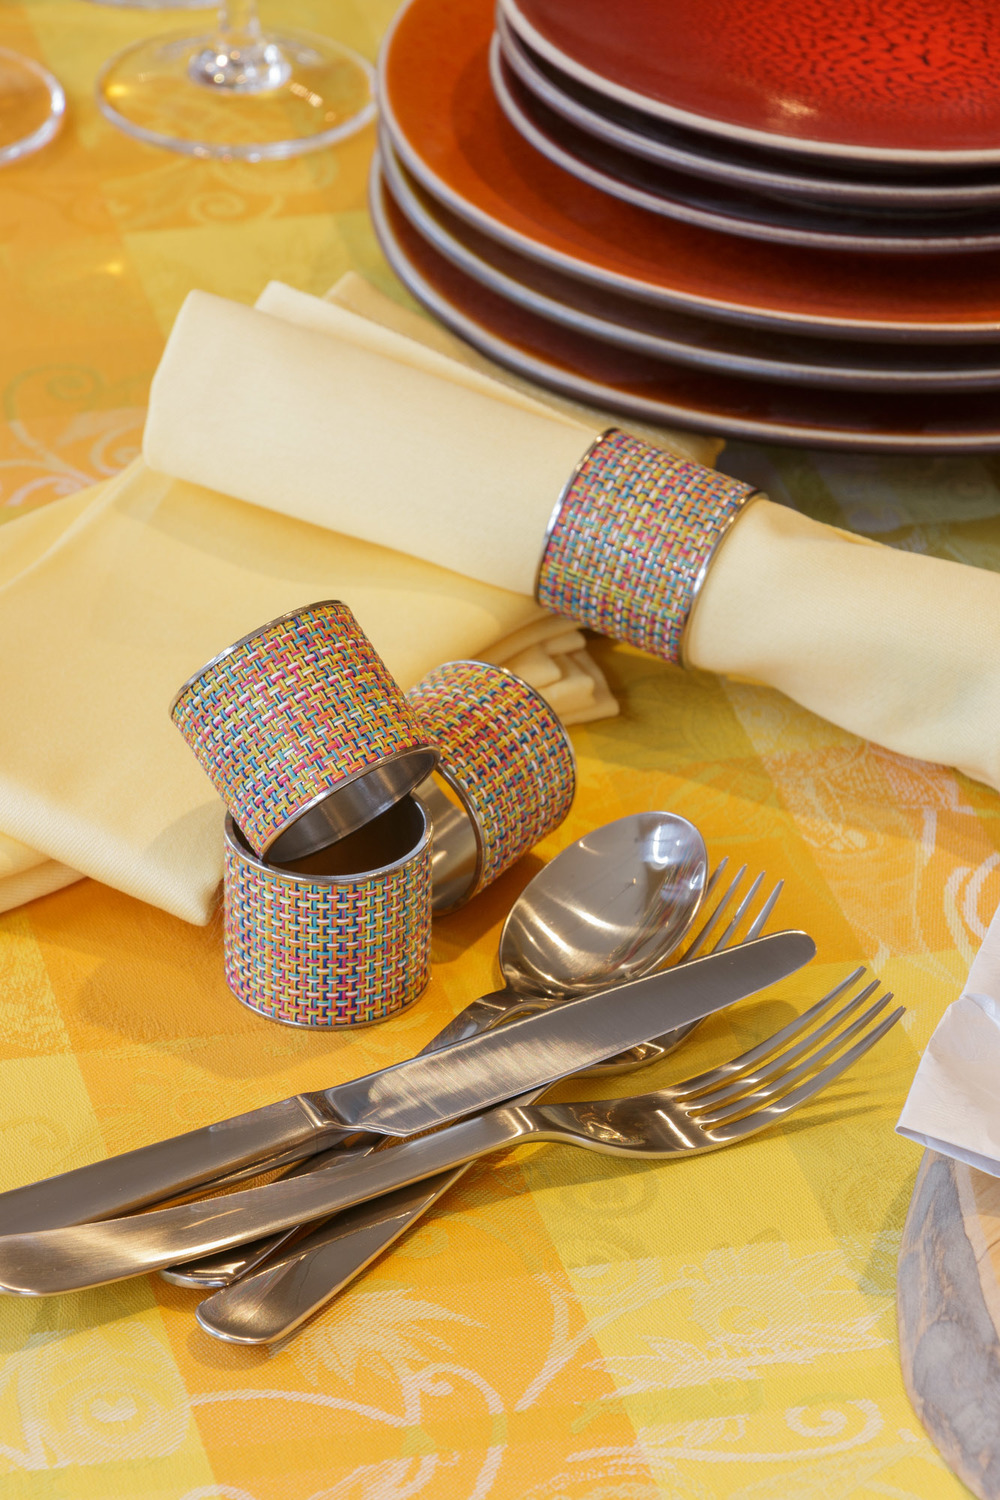 David Mellor Chelsea flatware, Chilewich napkin rings